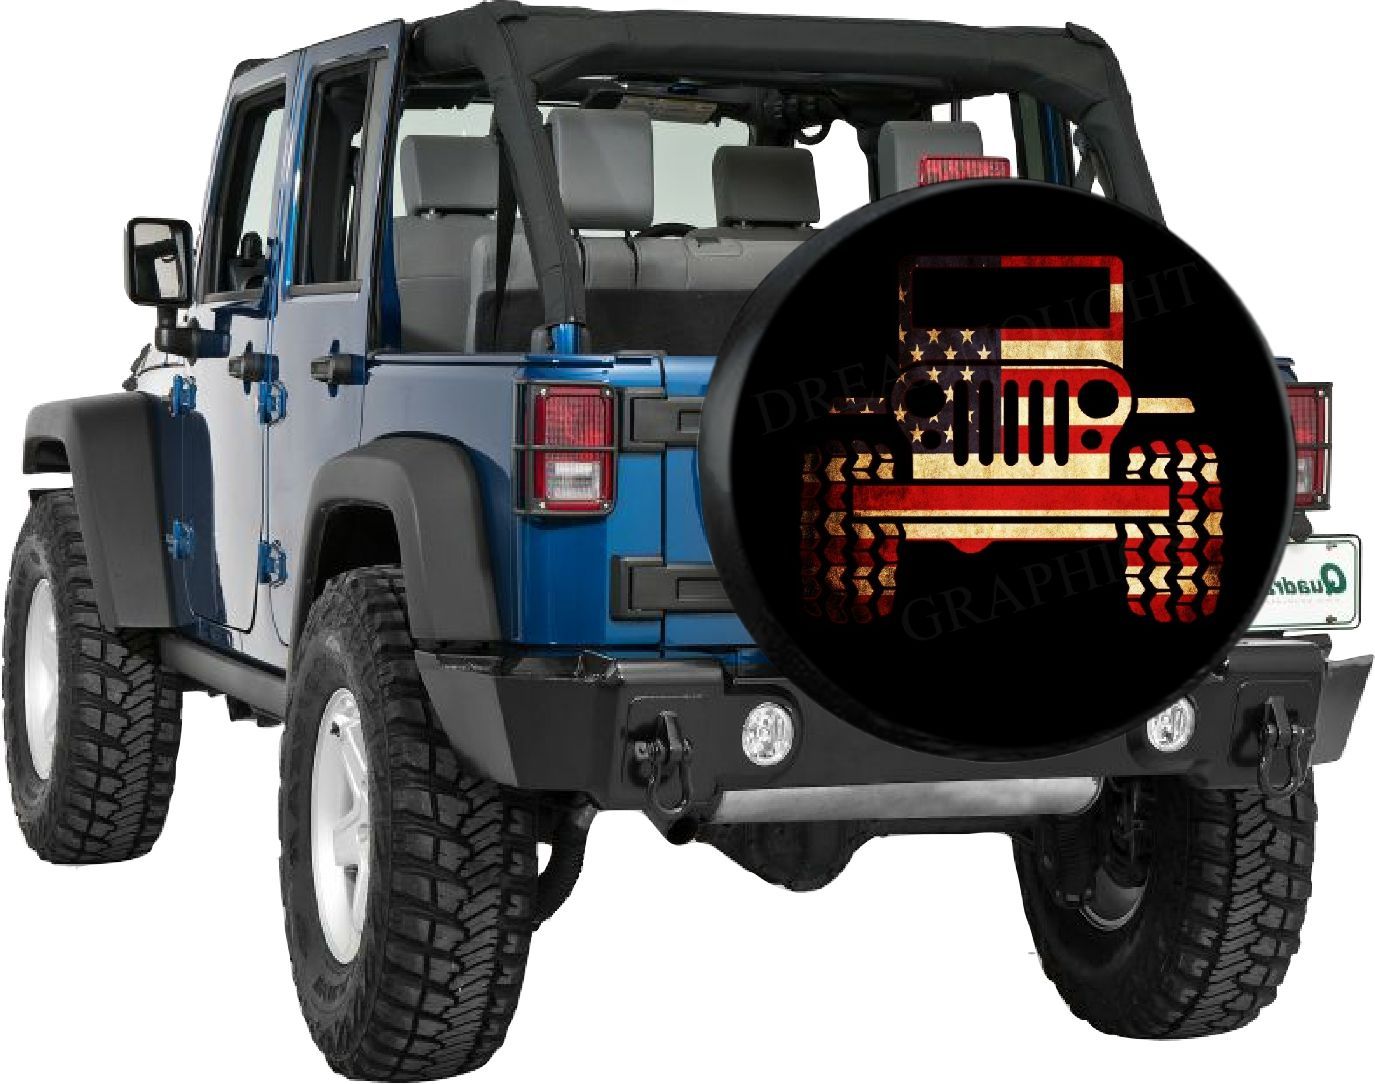 Jeep Flag Spare Tire Cover. Www.tirecoversale.com